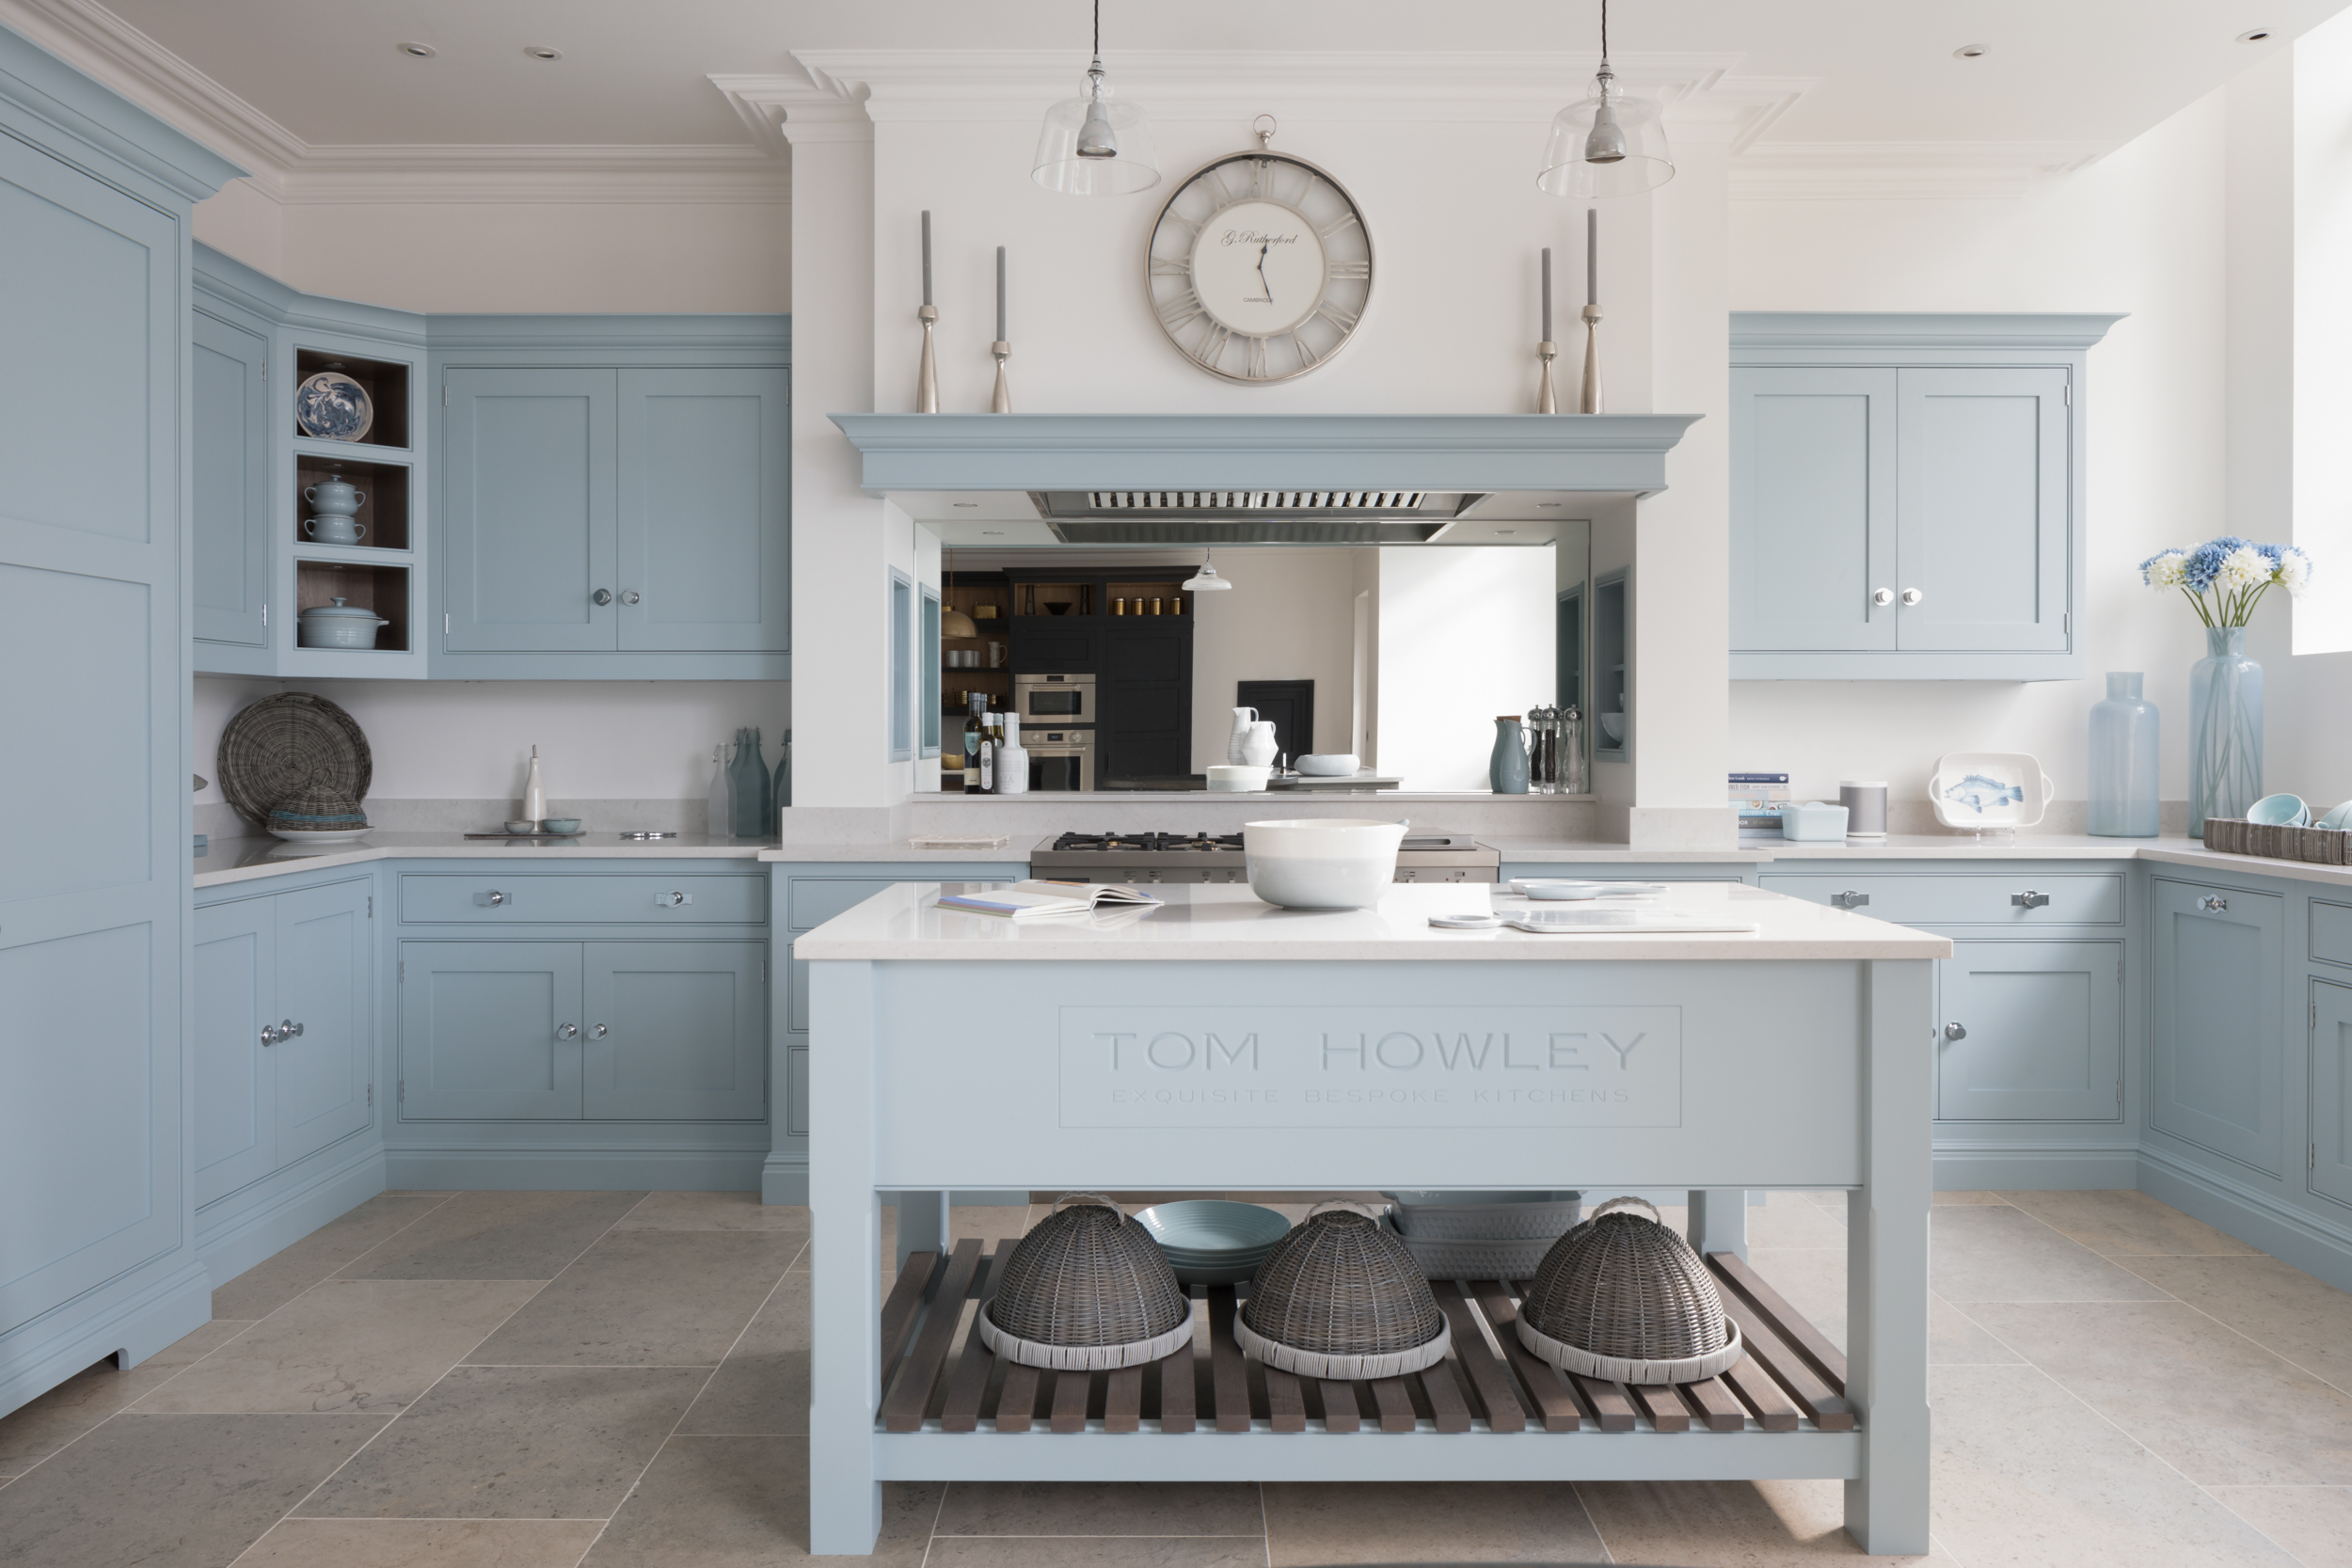 Paul Craig, Interior Photographer, Commercial Photography, London, Kitchen Showroom